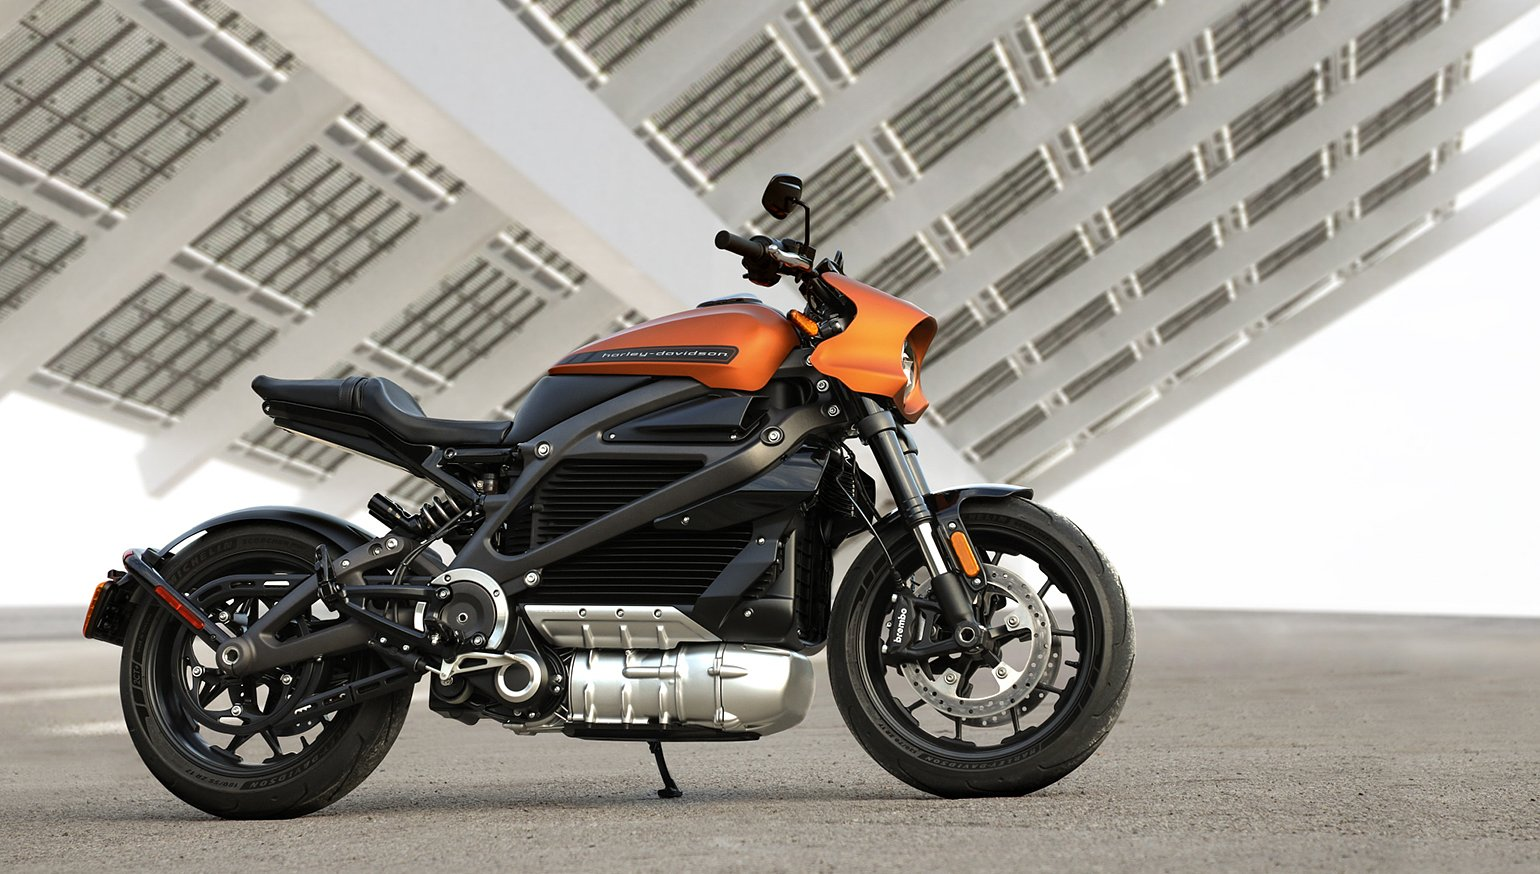 2020 Harley Davidson Livewire Price Range And Sd